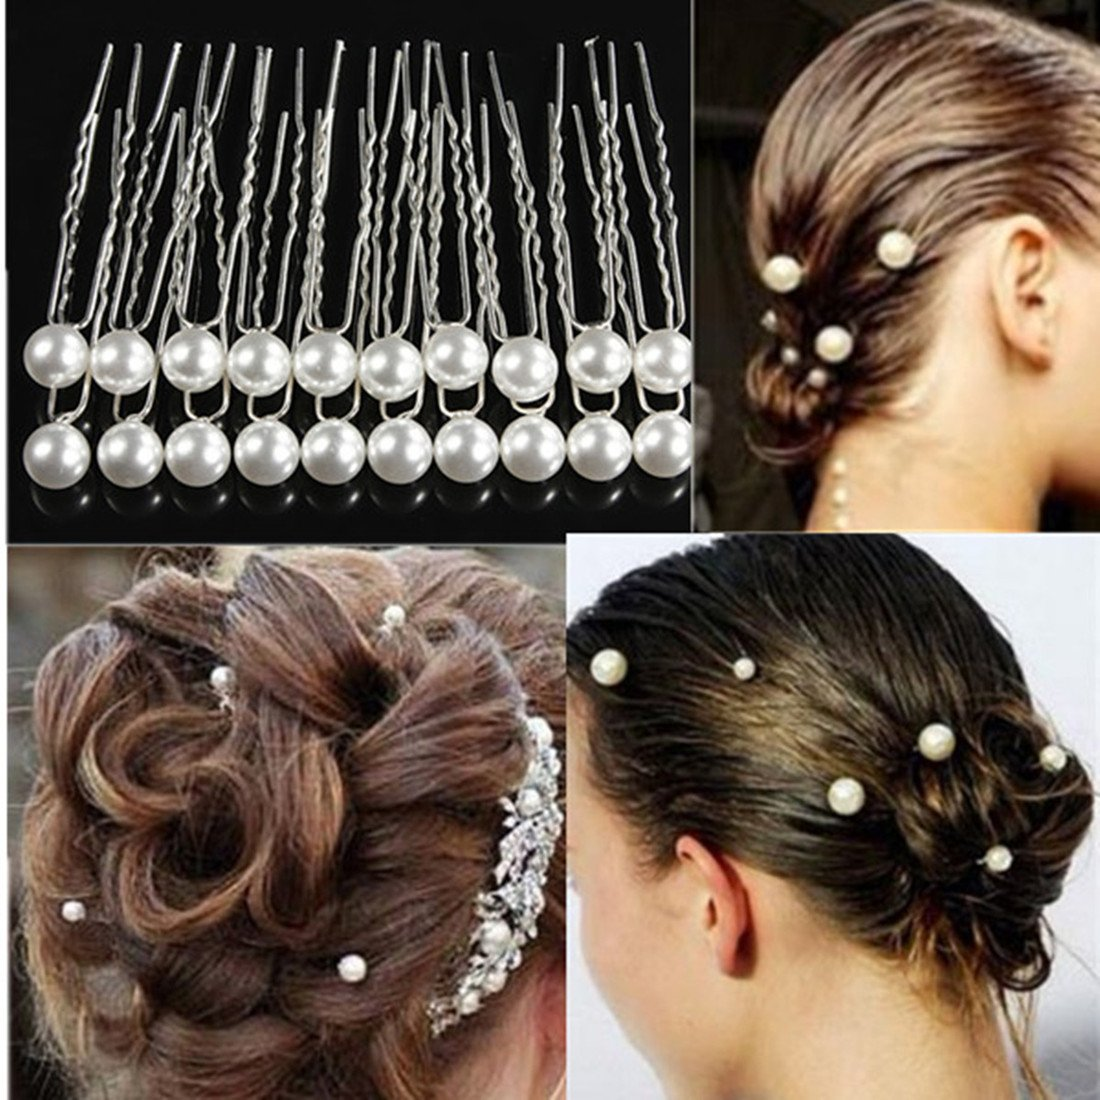 5 Sets of 20PCS Ladies Wedding Bridal Prom White Pearl Hairpins Alloy Hair Stick Pins Clips Grips